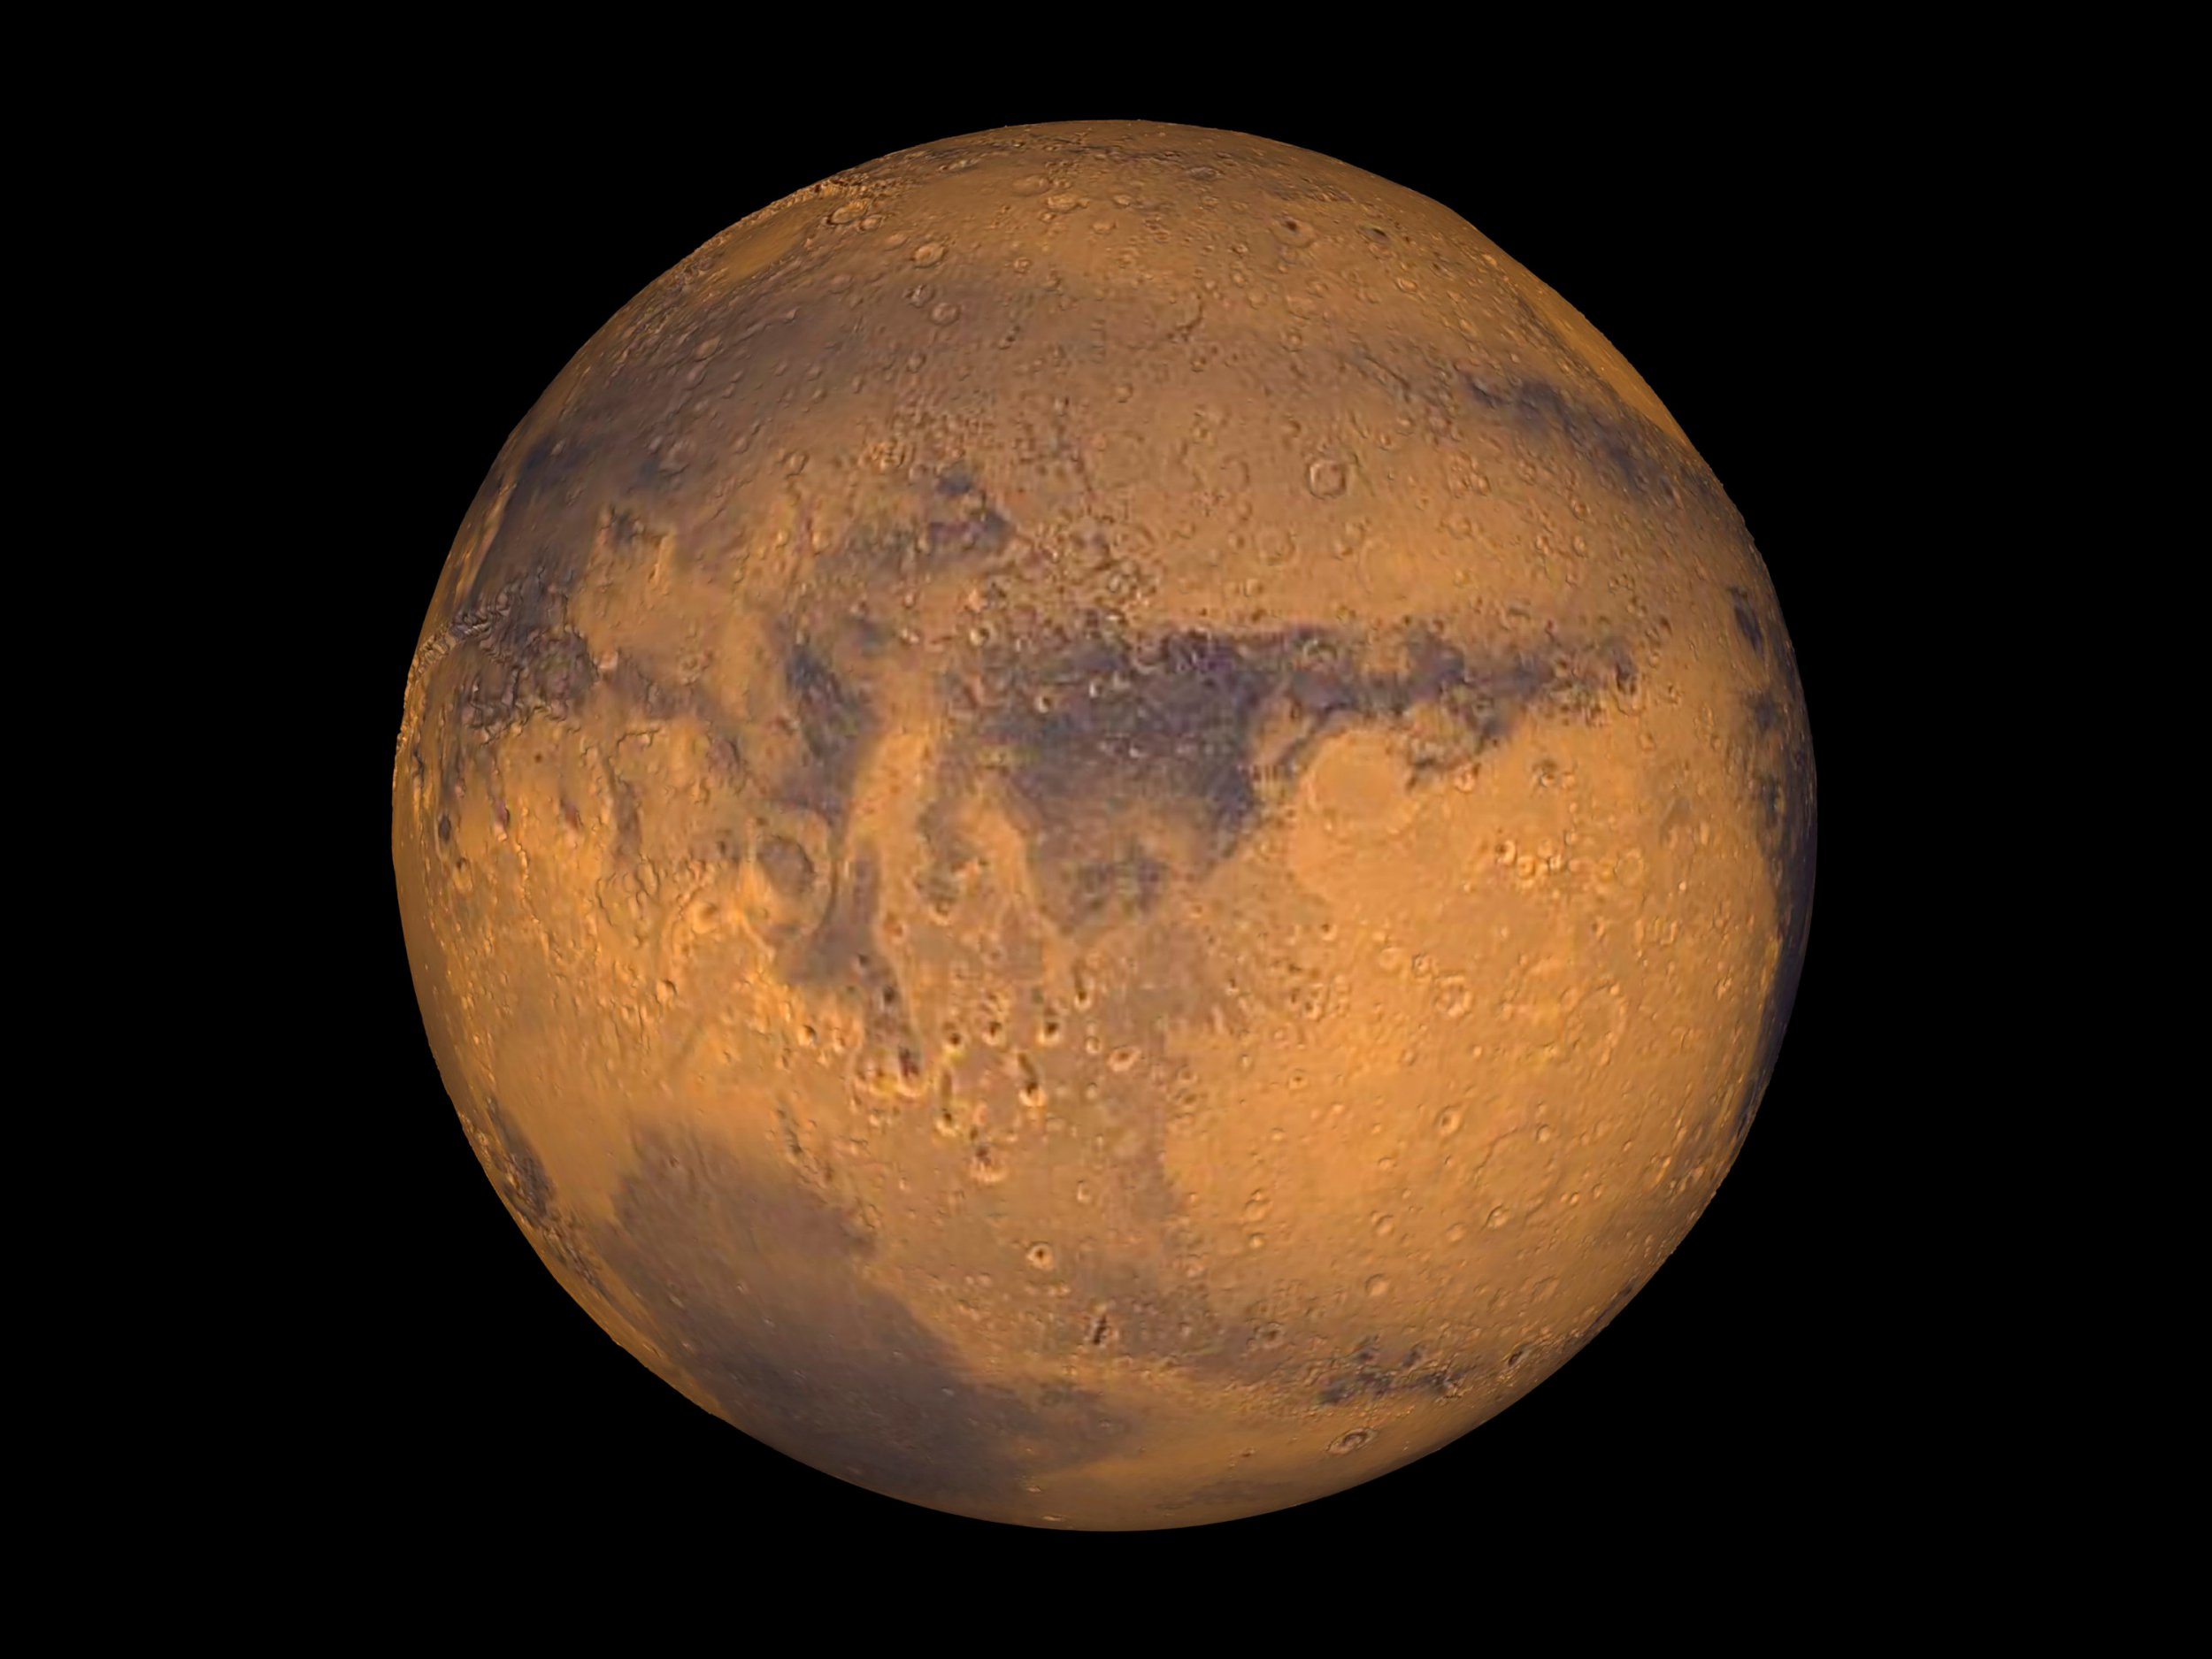 Mars is about to loom large in the sky during its closest encounter with Earth in 15 years